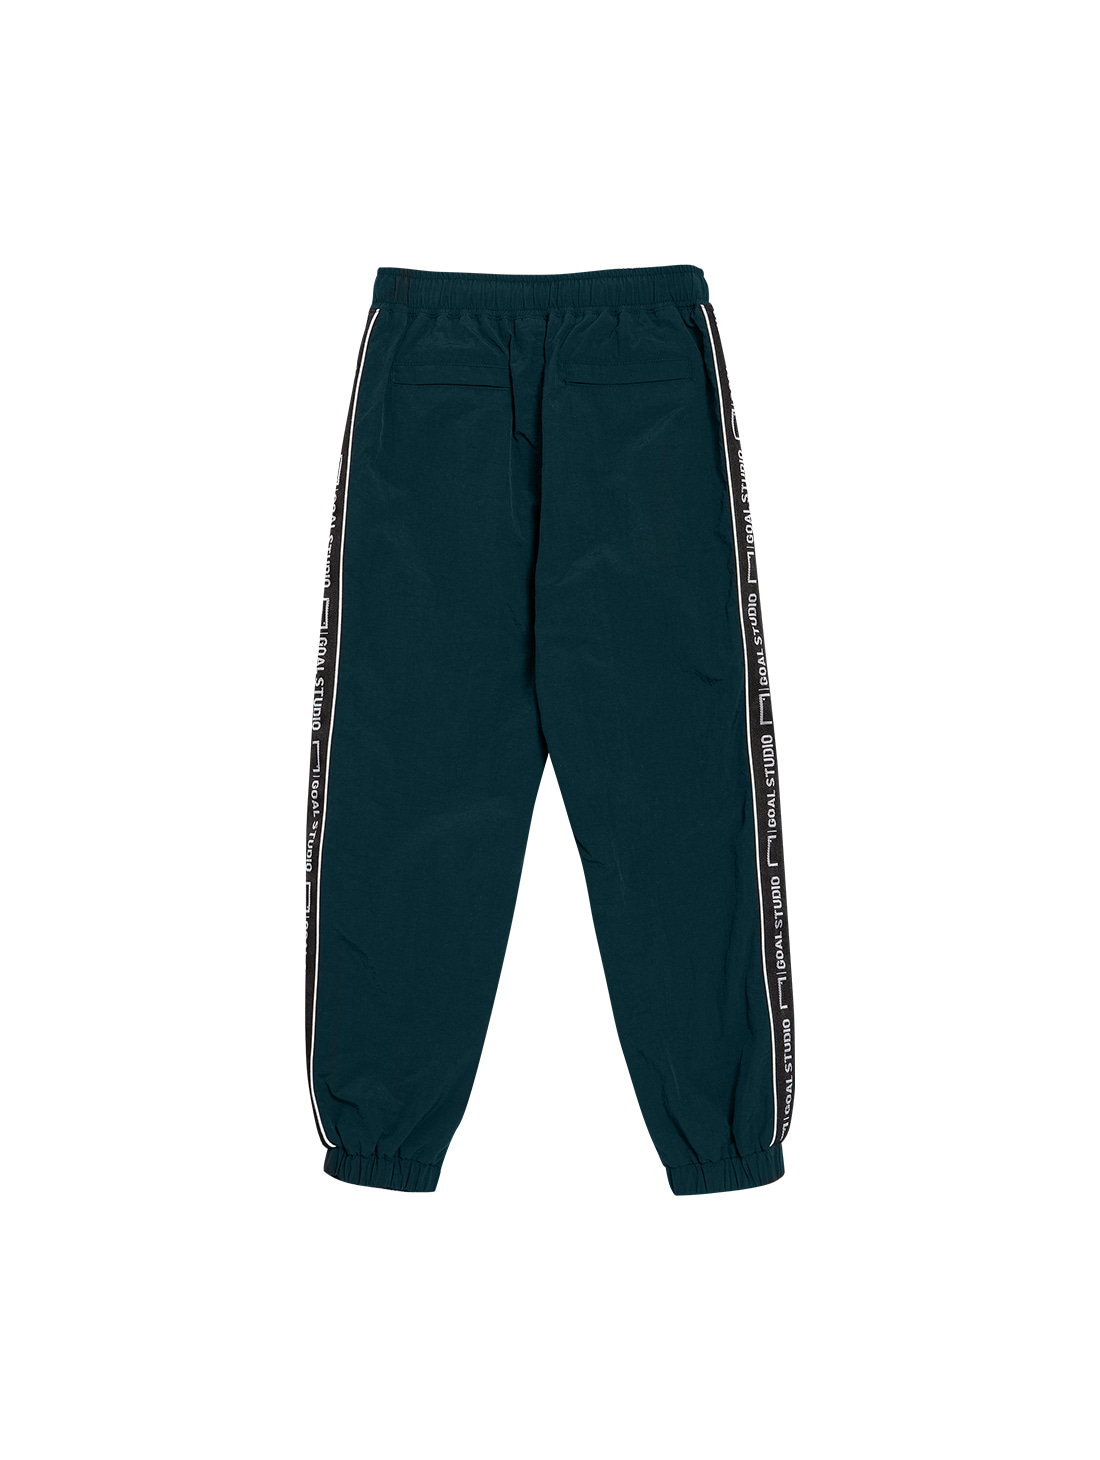 (KIDS) SMALL LOGO TRACK PANTS - DARK GREEN